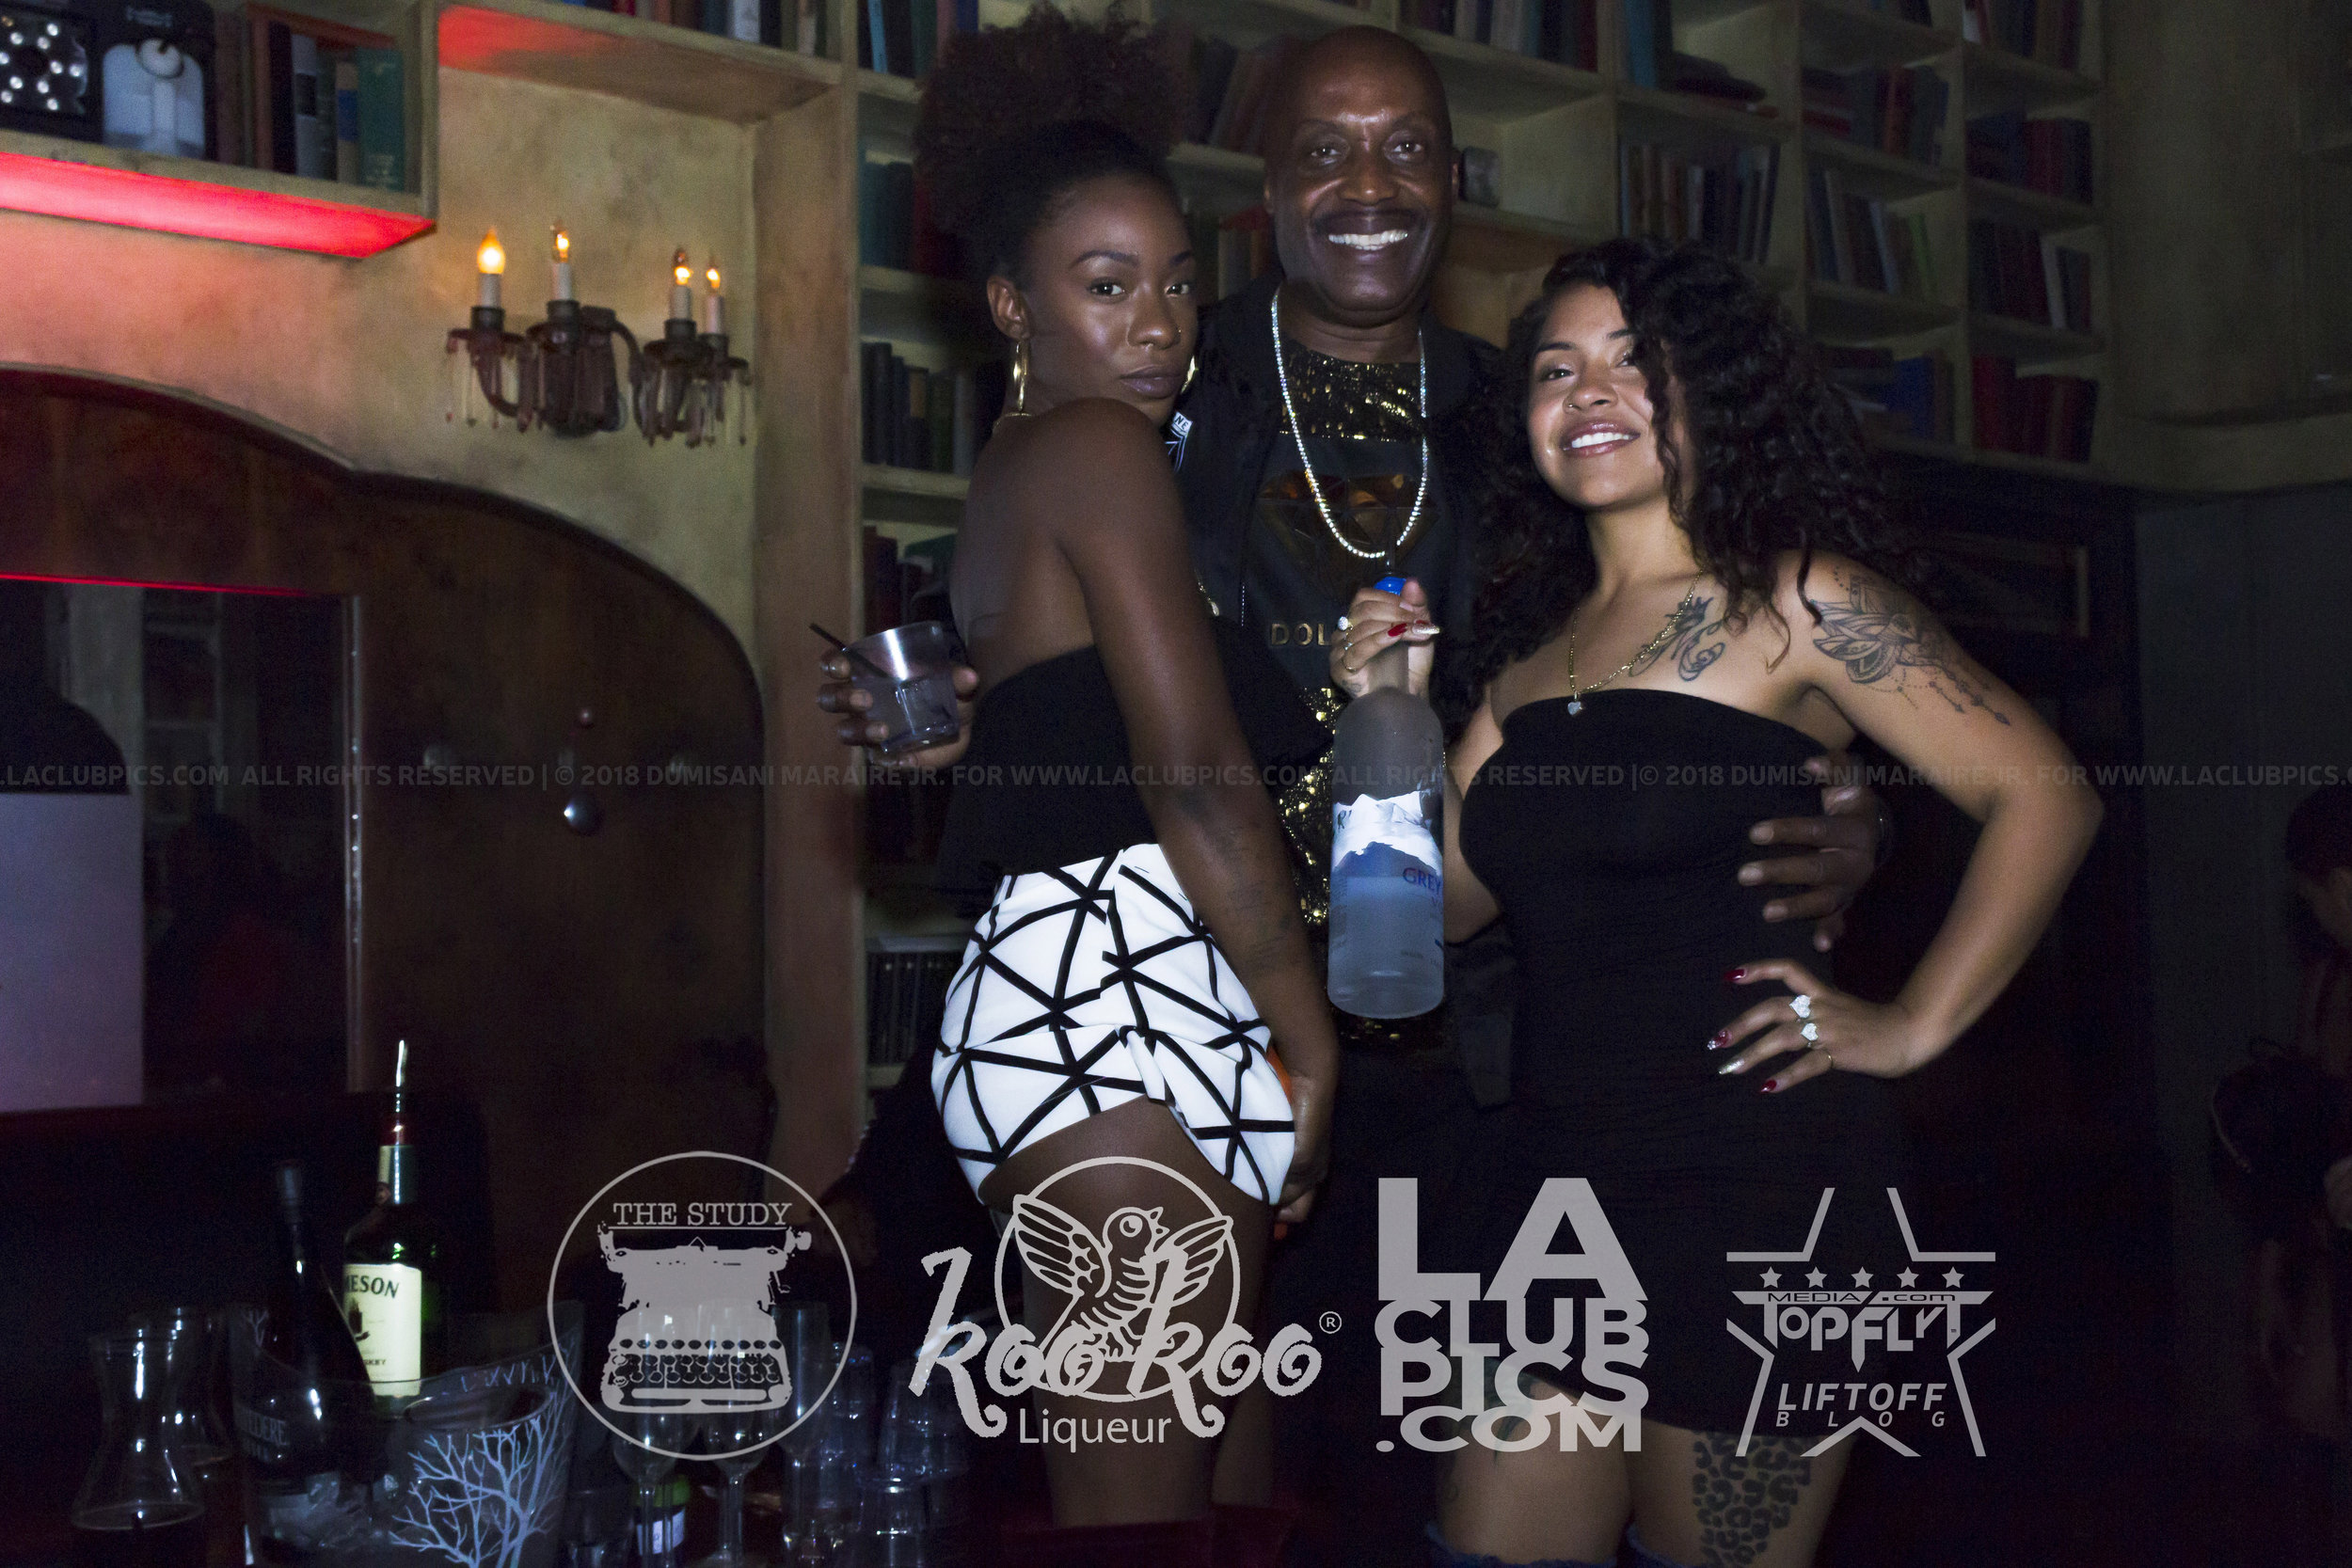 VIP Host Freeway Rich with some of the lovely ladies at The Study.